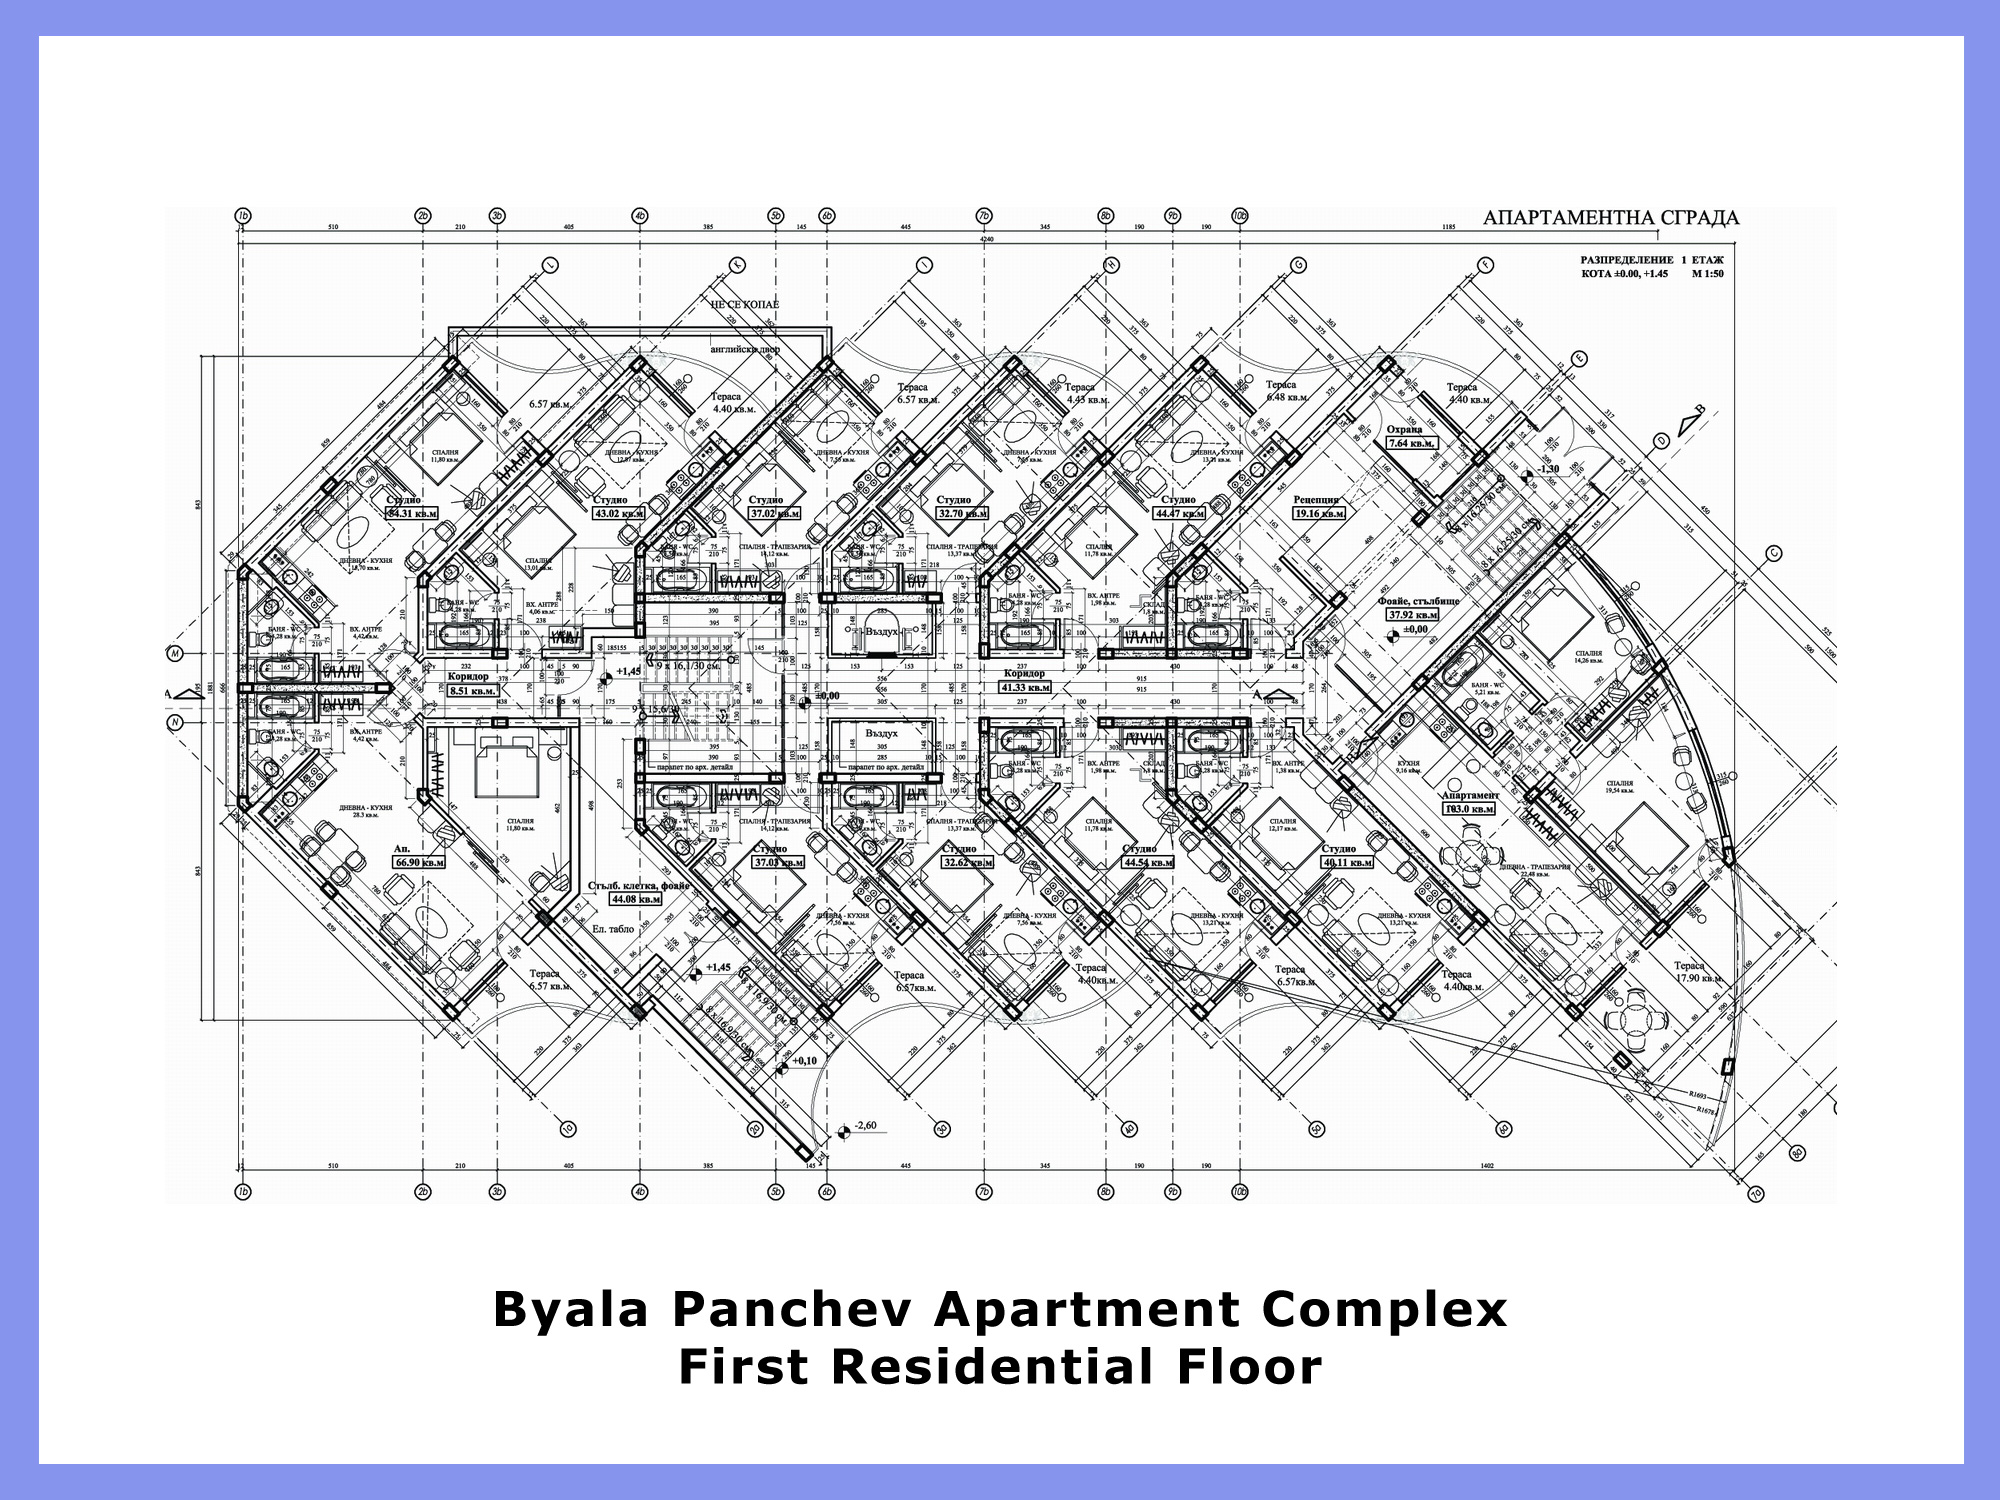 28 apartment complex floor plans 171 architectural for Apartment site plan